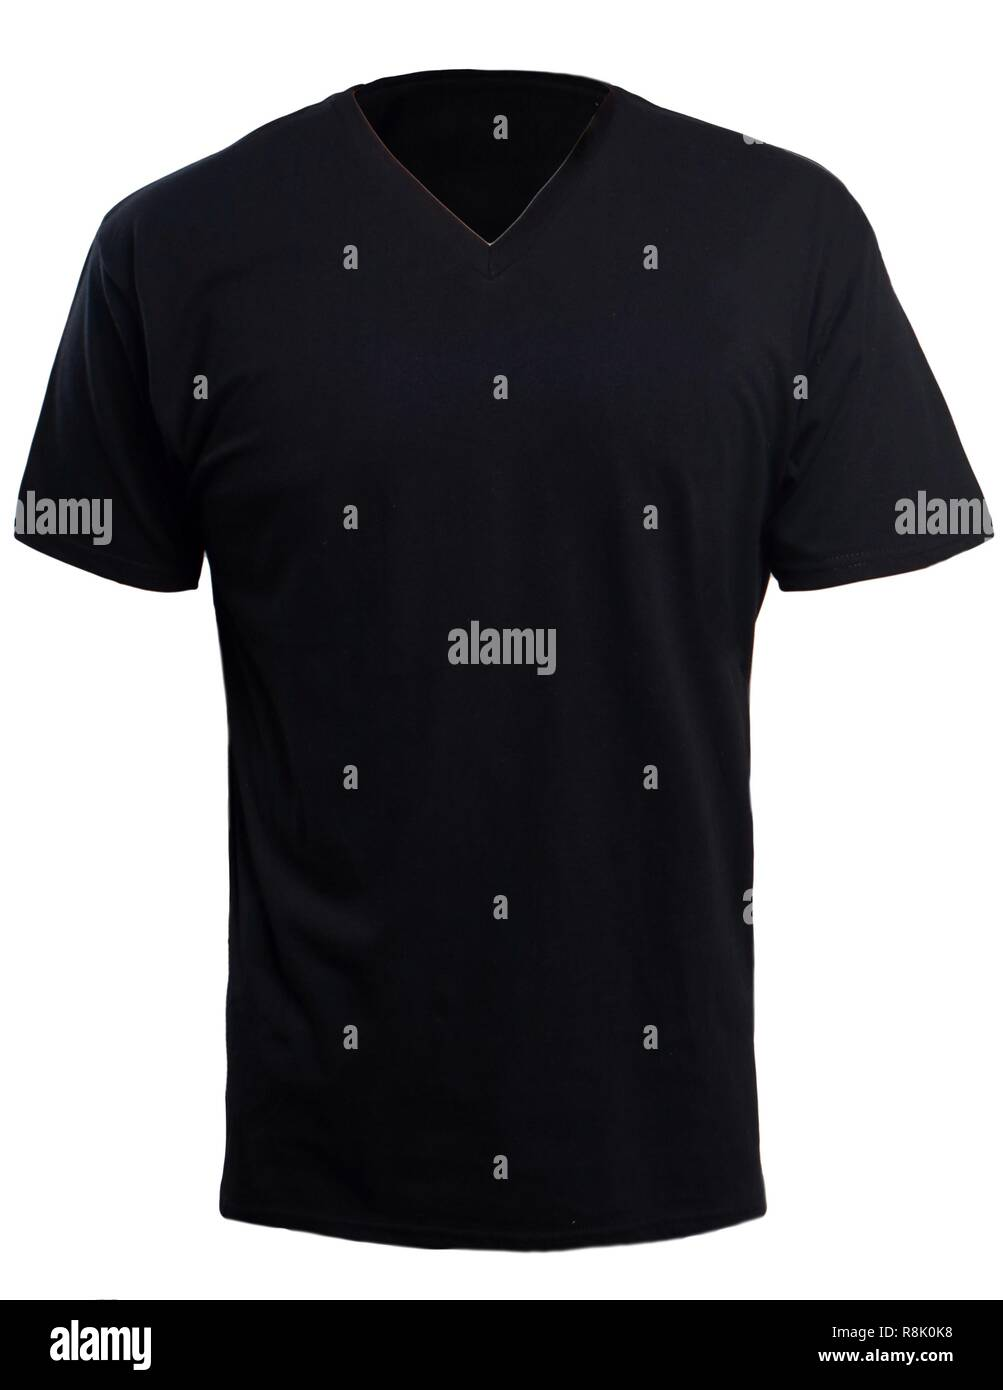 5c0924a8 Black Tee Shirt T Shirt T Shirt Stock Photos & Black Tee Shirt T ...